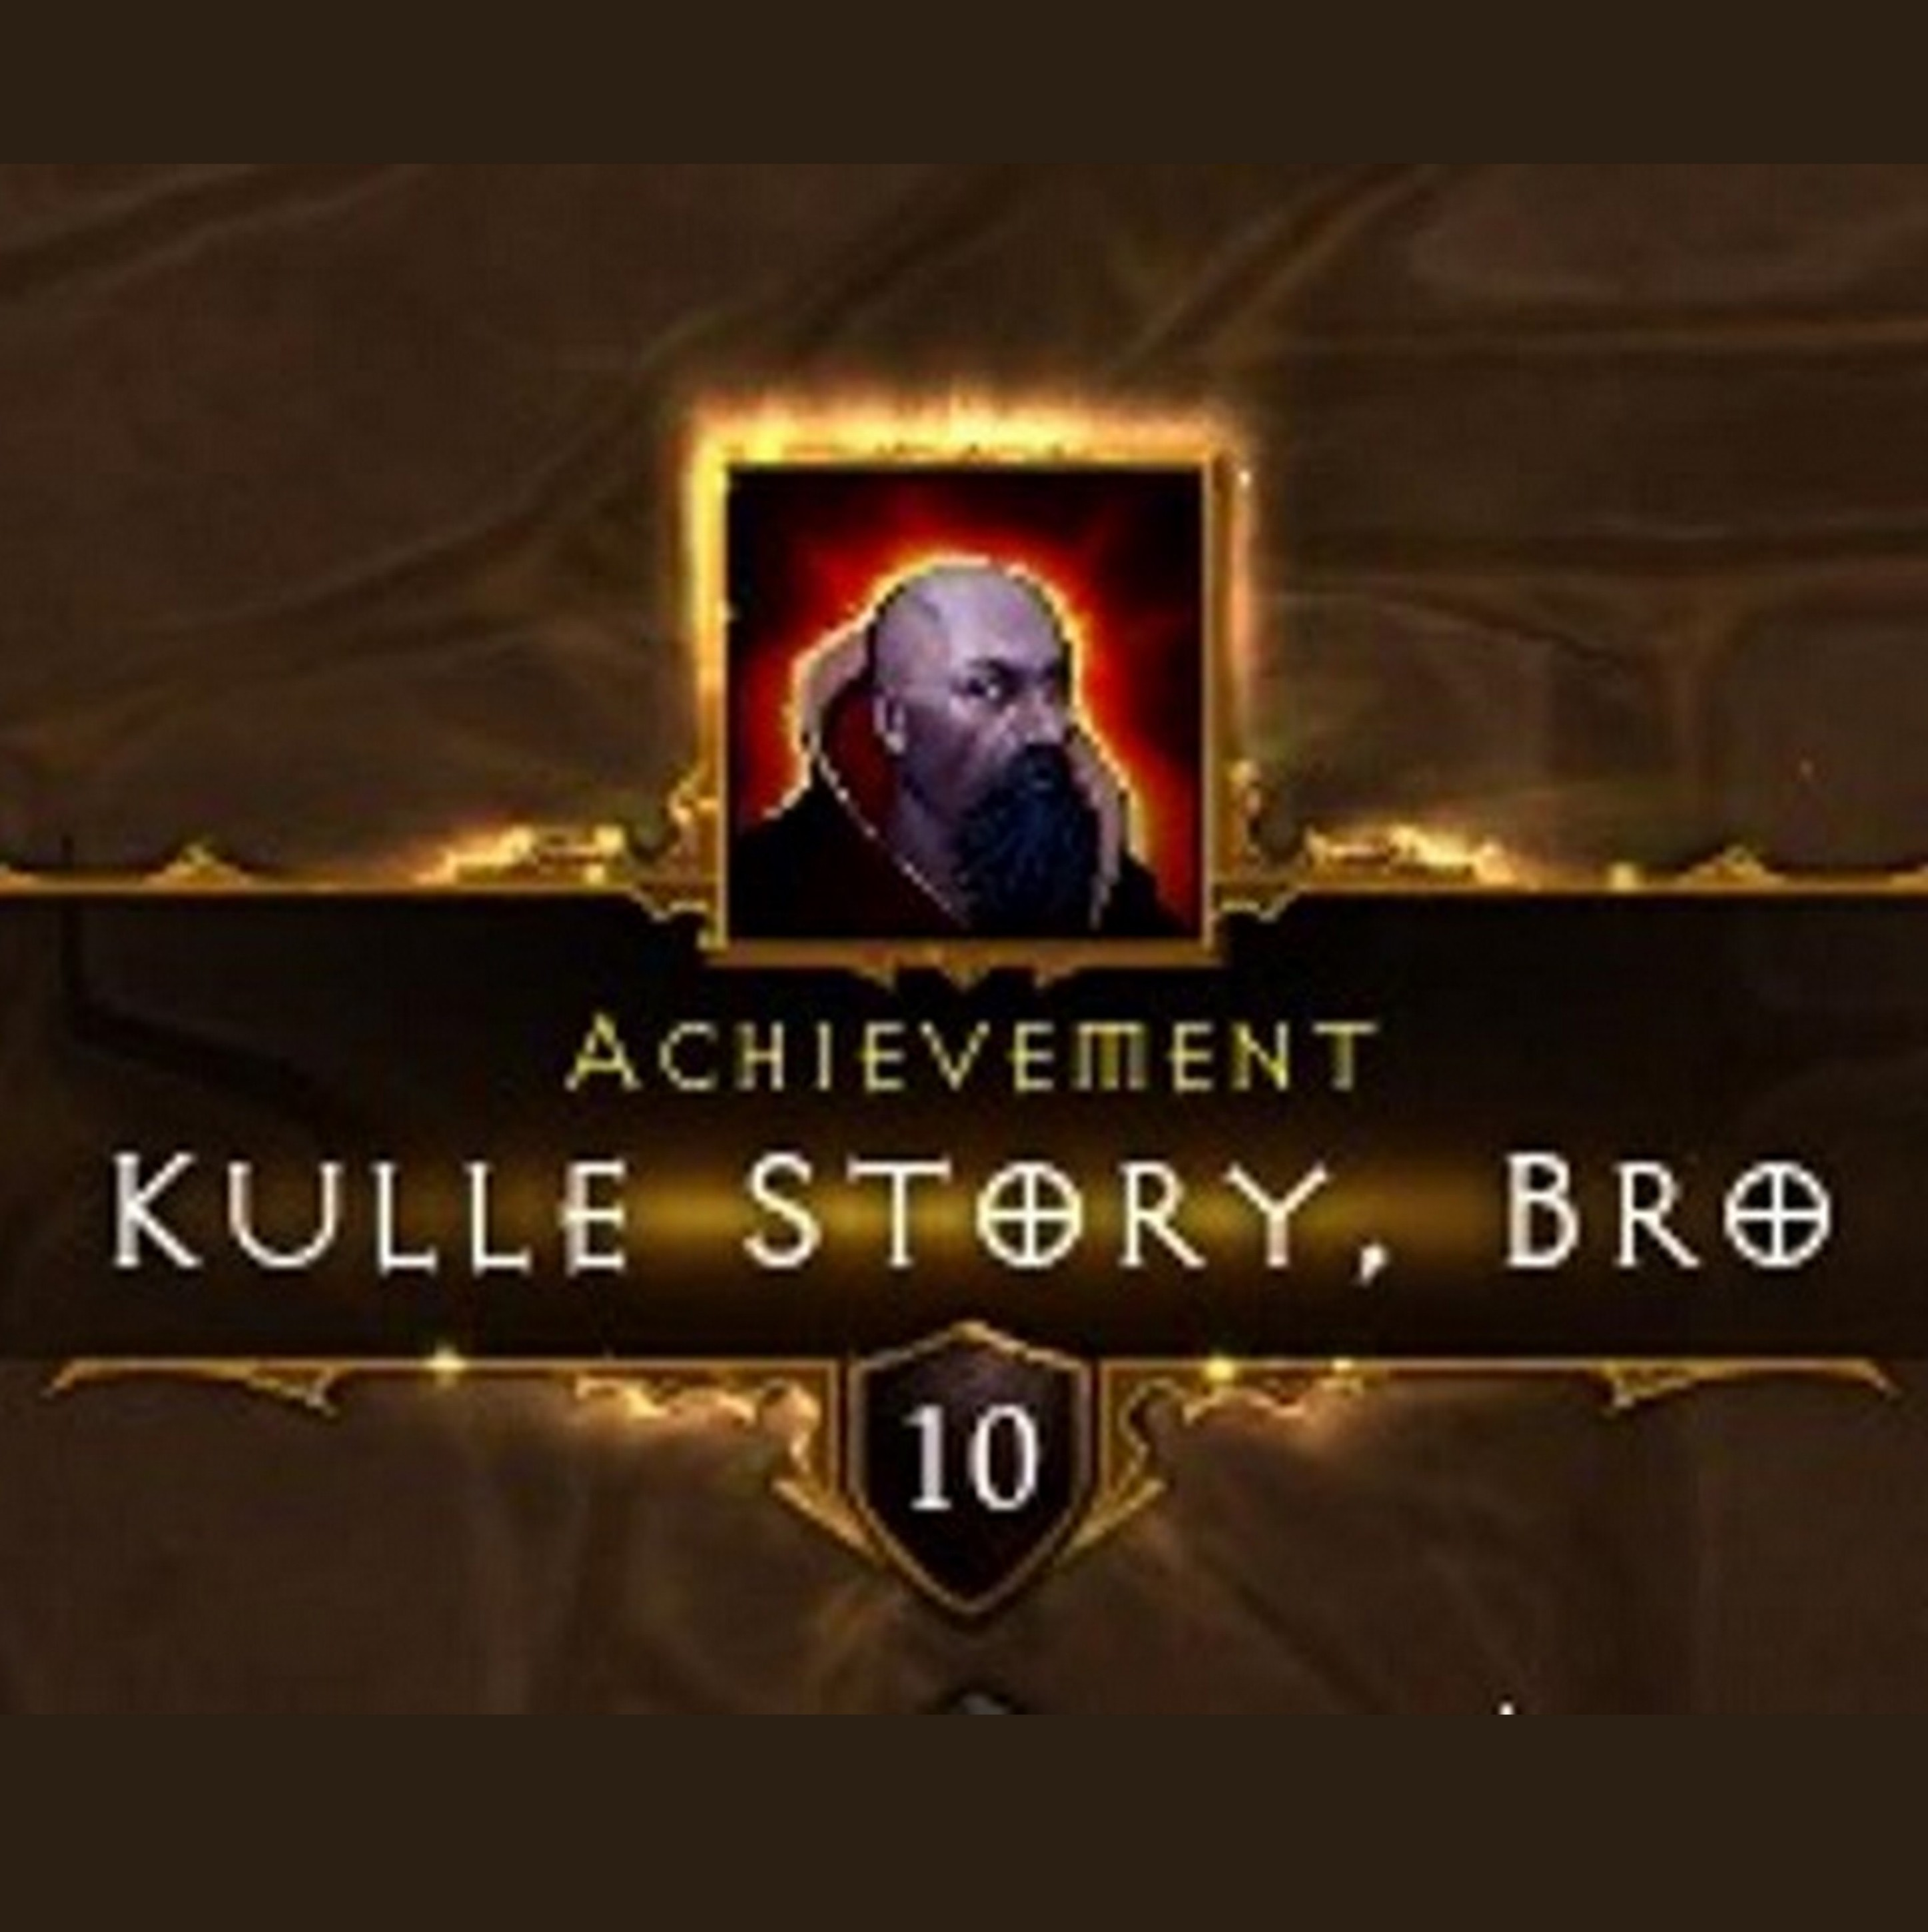 Kulle Story Bro - A Diablo 3 Podcast Episode 19